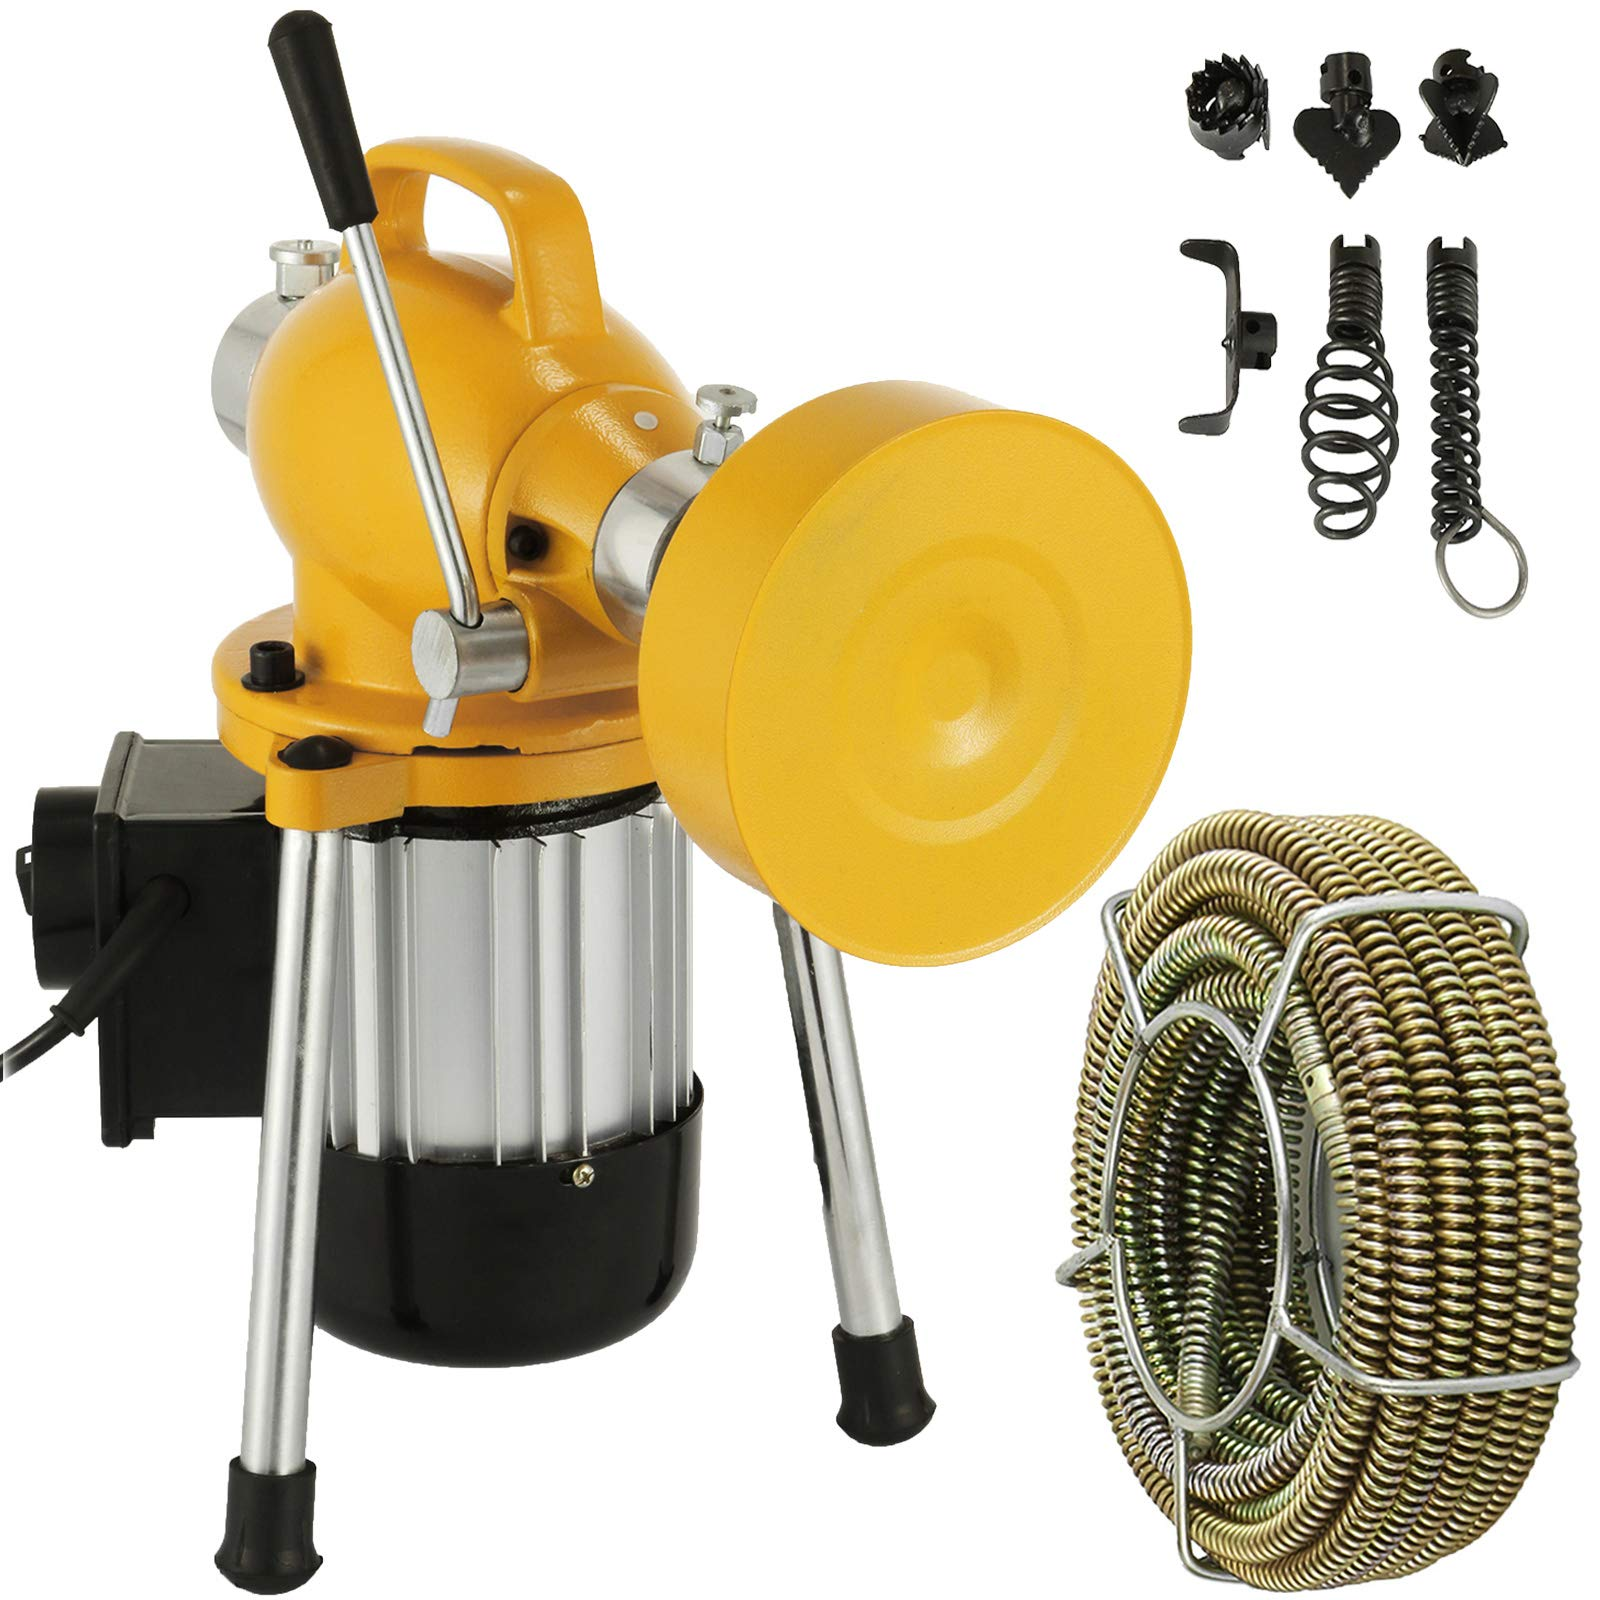 Mophorn 3/4''-4'' Sectional Pipe Drain Cleaning Machine 400PRM Snake Cleaner Pipe Drain Cleaning Machine with 66' x 2/3'' Galvanize Cable Heavy Duty (Yellow Color) by Mophorn